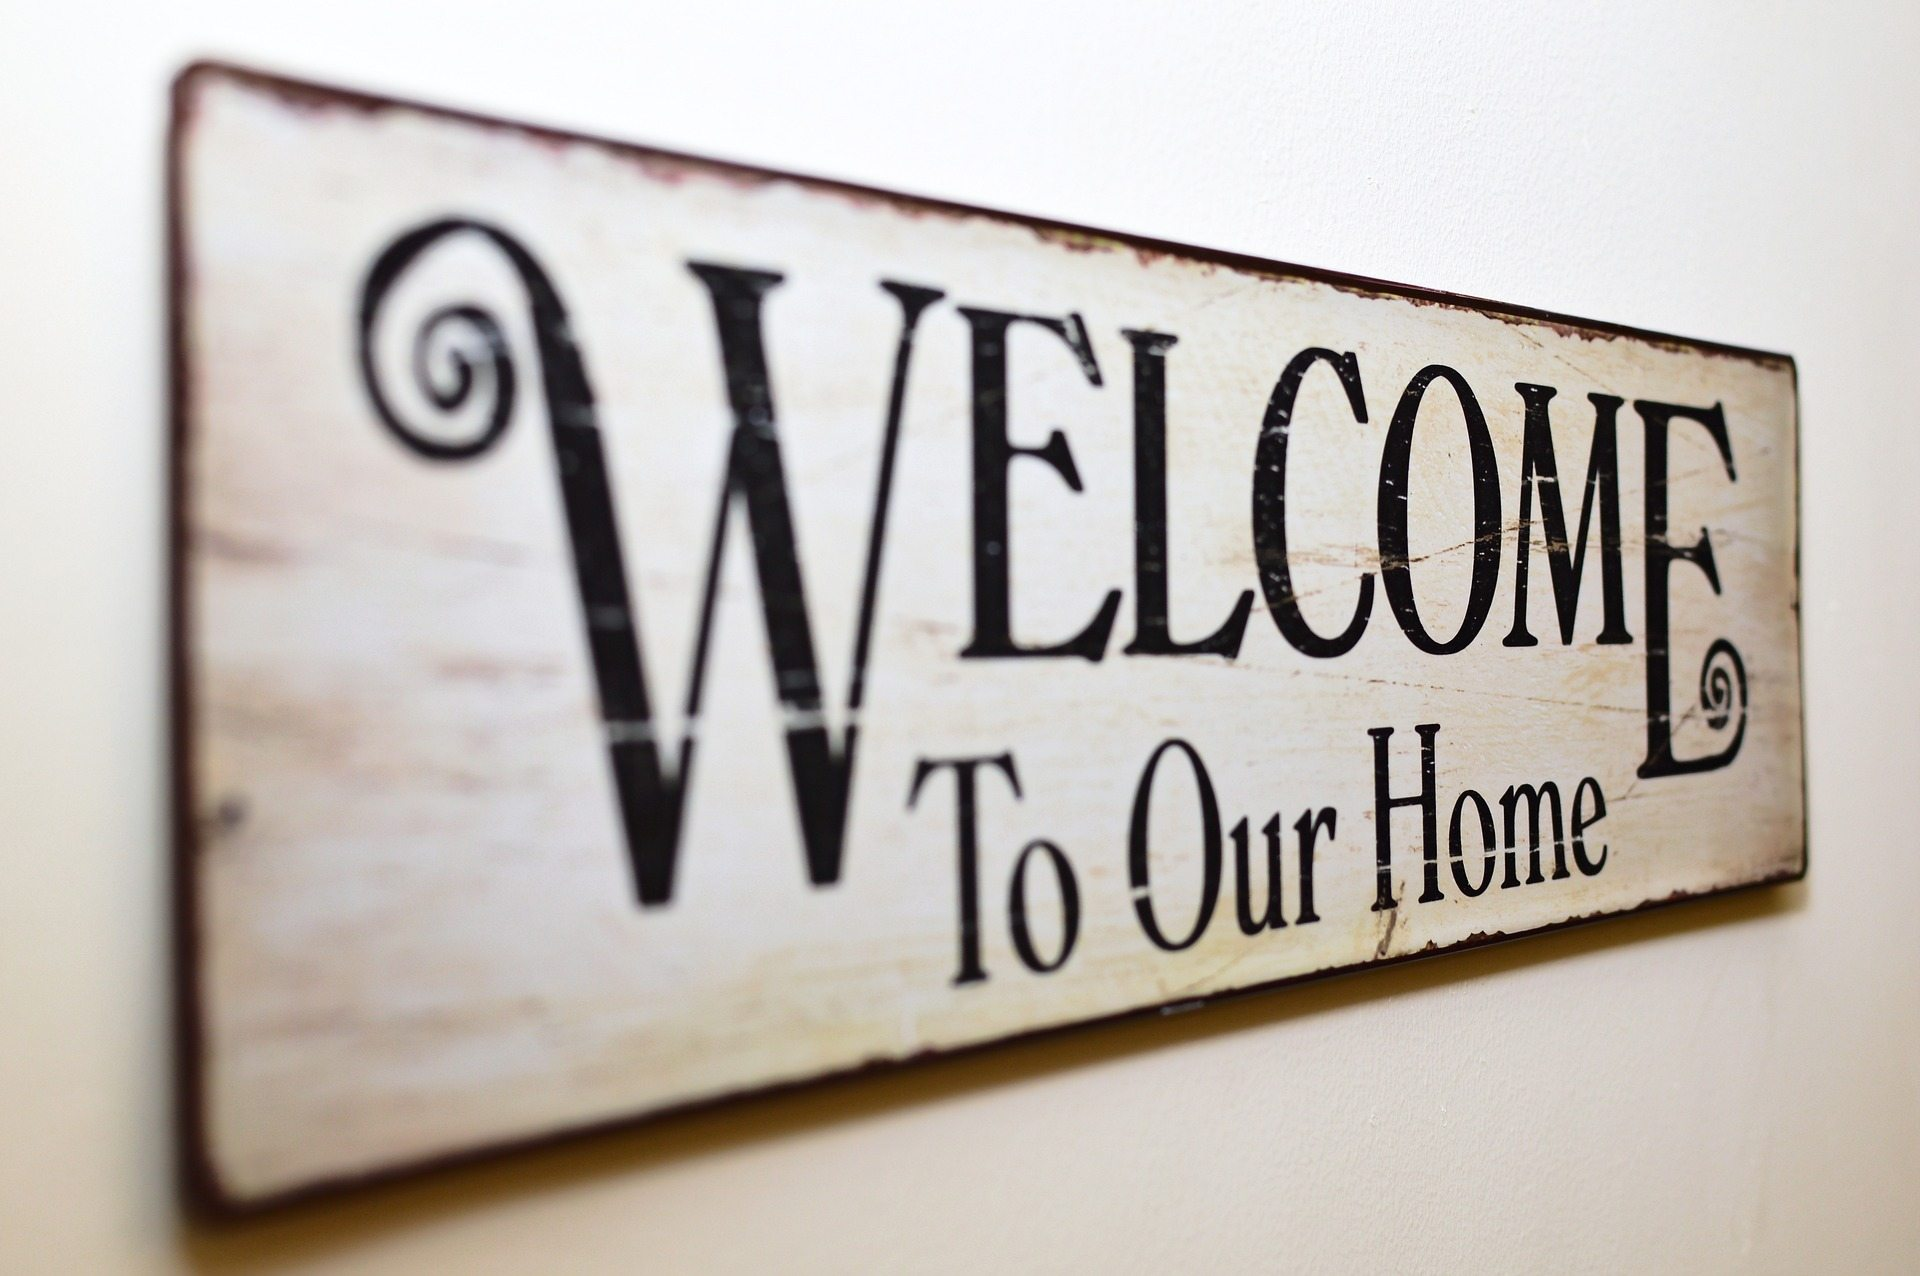 Cohabitation - Pixabay welcome-to-our-home-1205888_1920